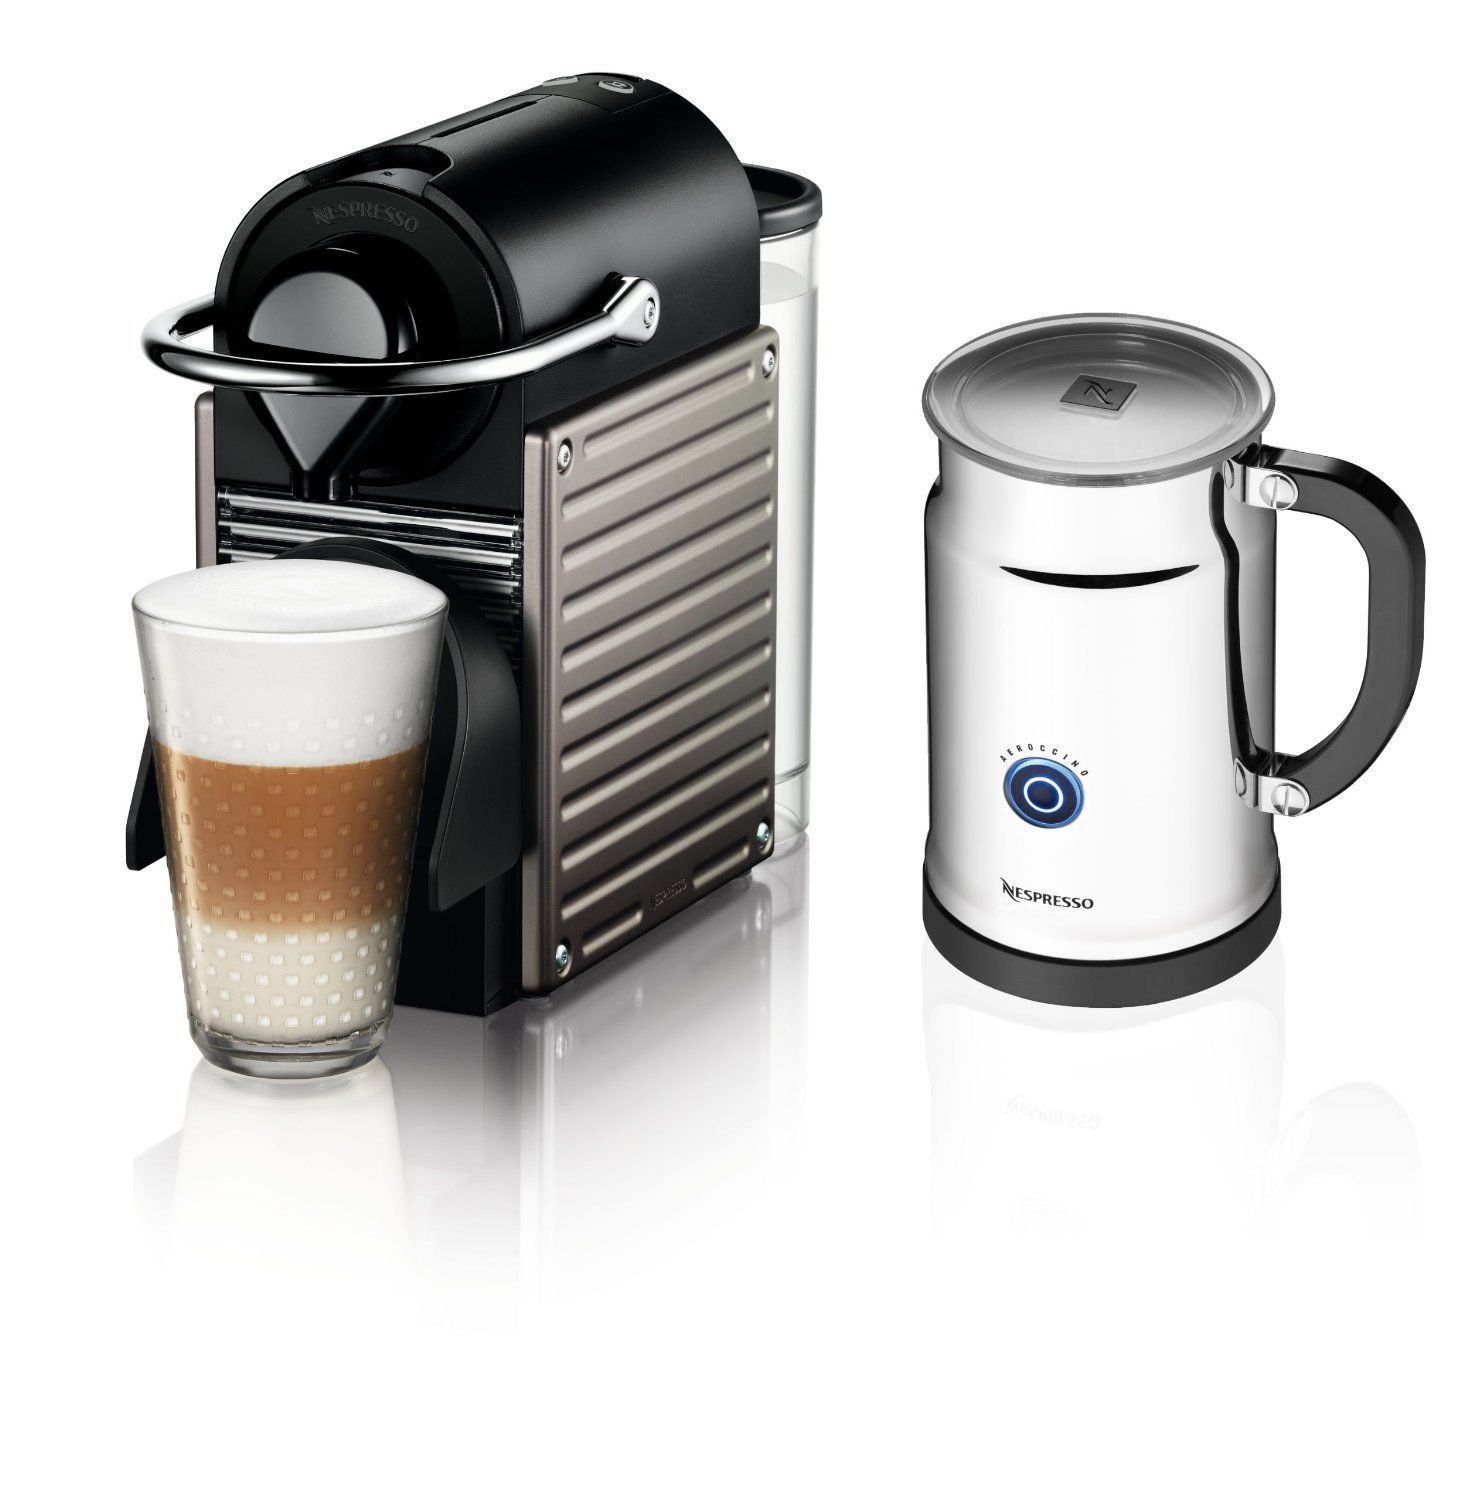 Nespresso Pixie Espresso Maker With Aeroccino By Nespresso Color